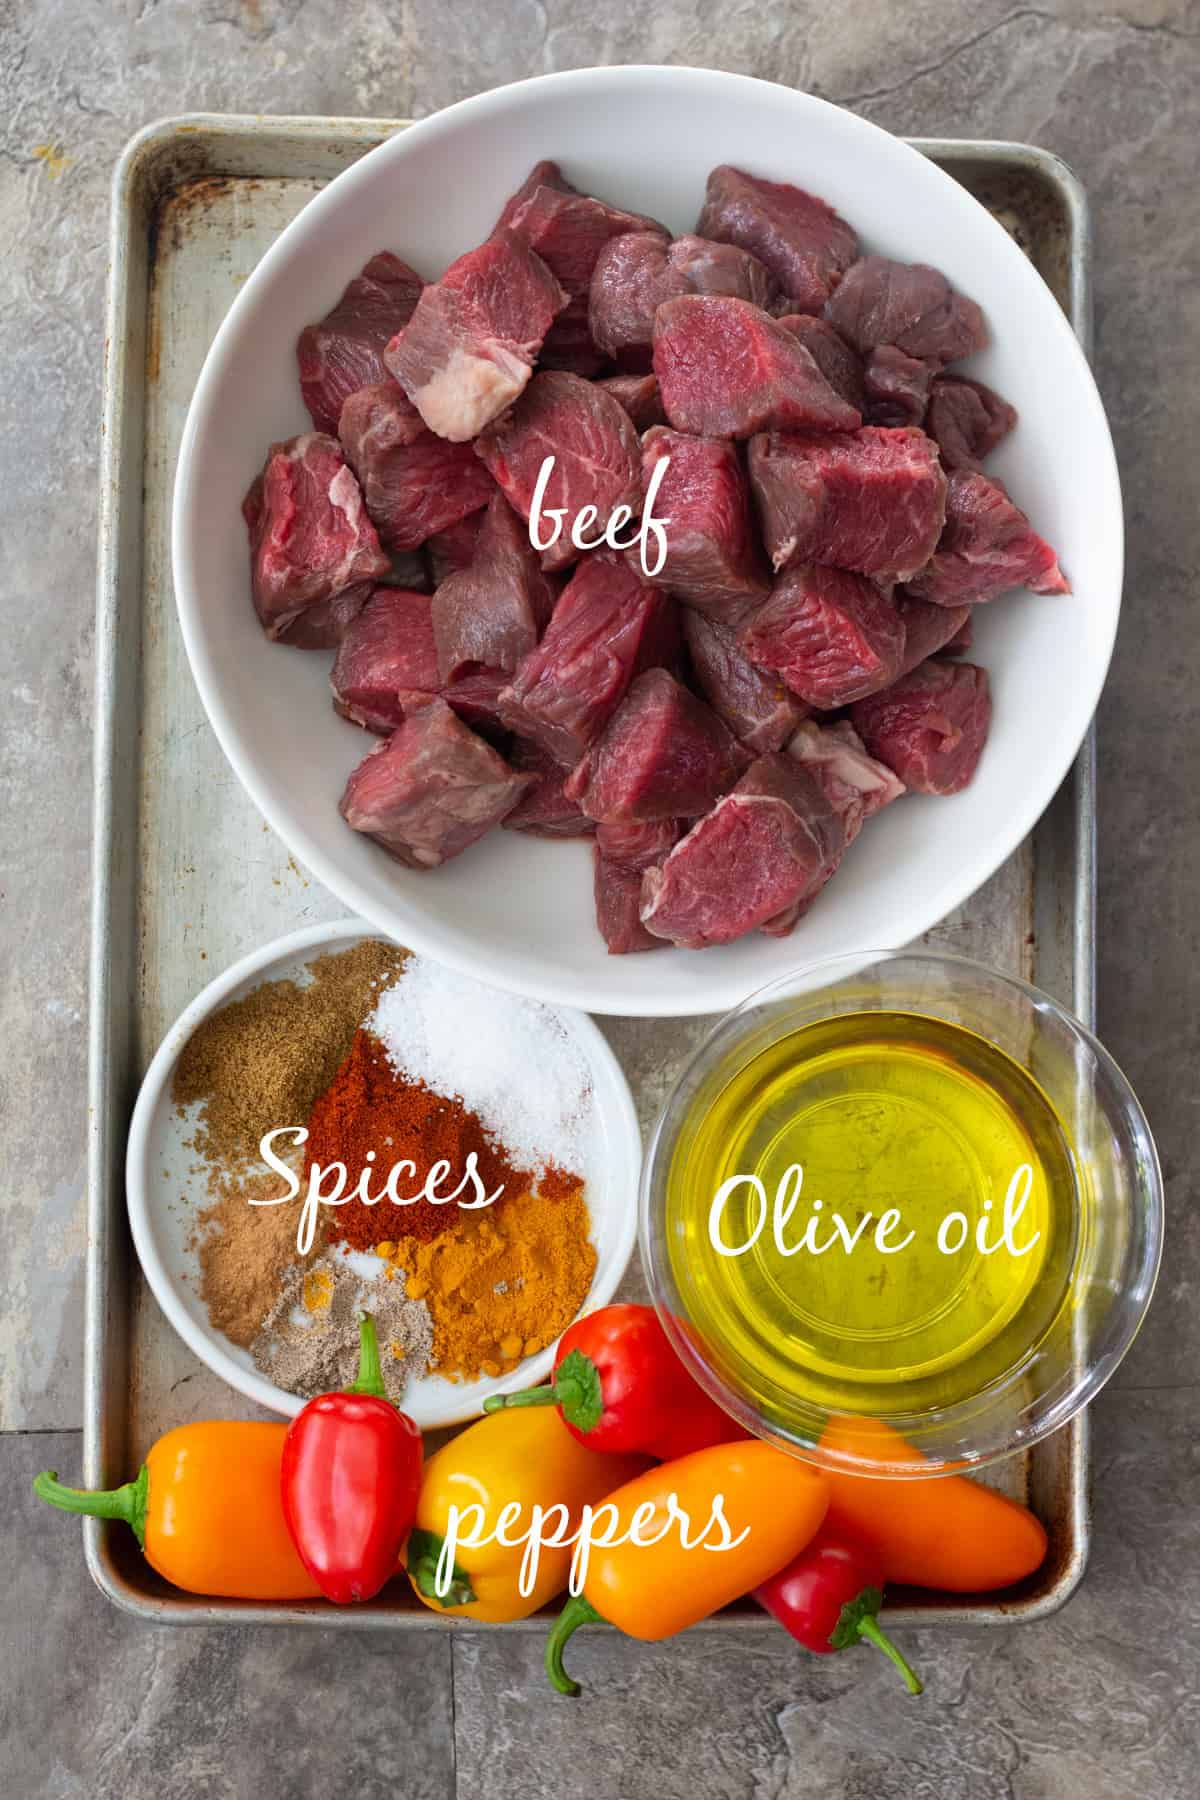 For this recipe you need beef chunks, olive oil, spices and peppers.